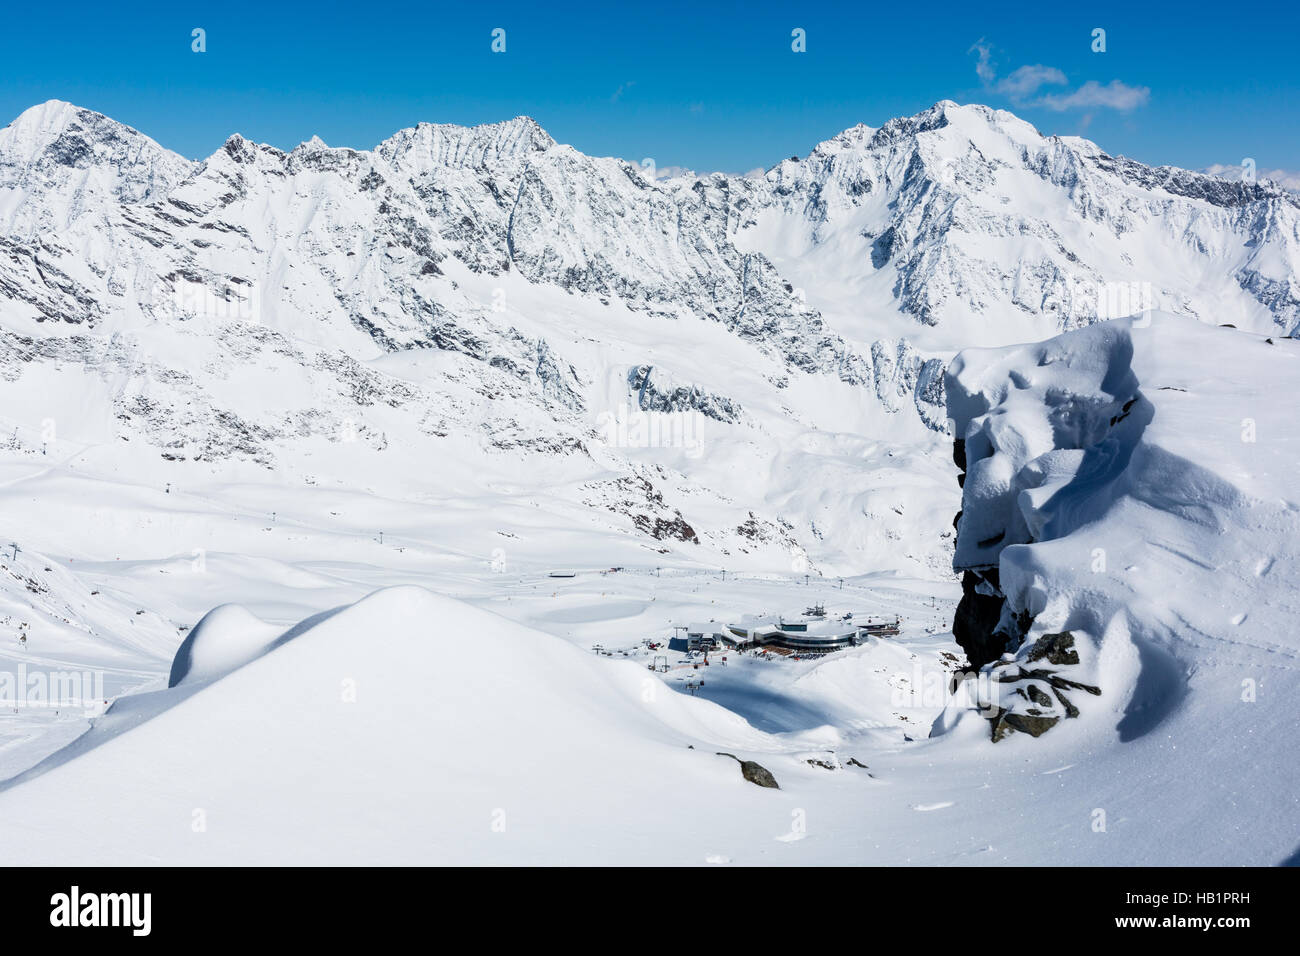 Austria's largest glacier skiing area - only 45 minutes away from Innsbruck - offers 34 slopes from easy to - Stock Image